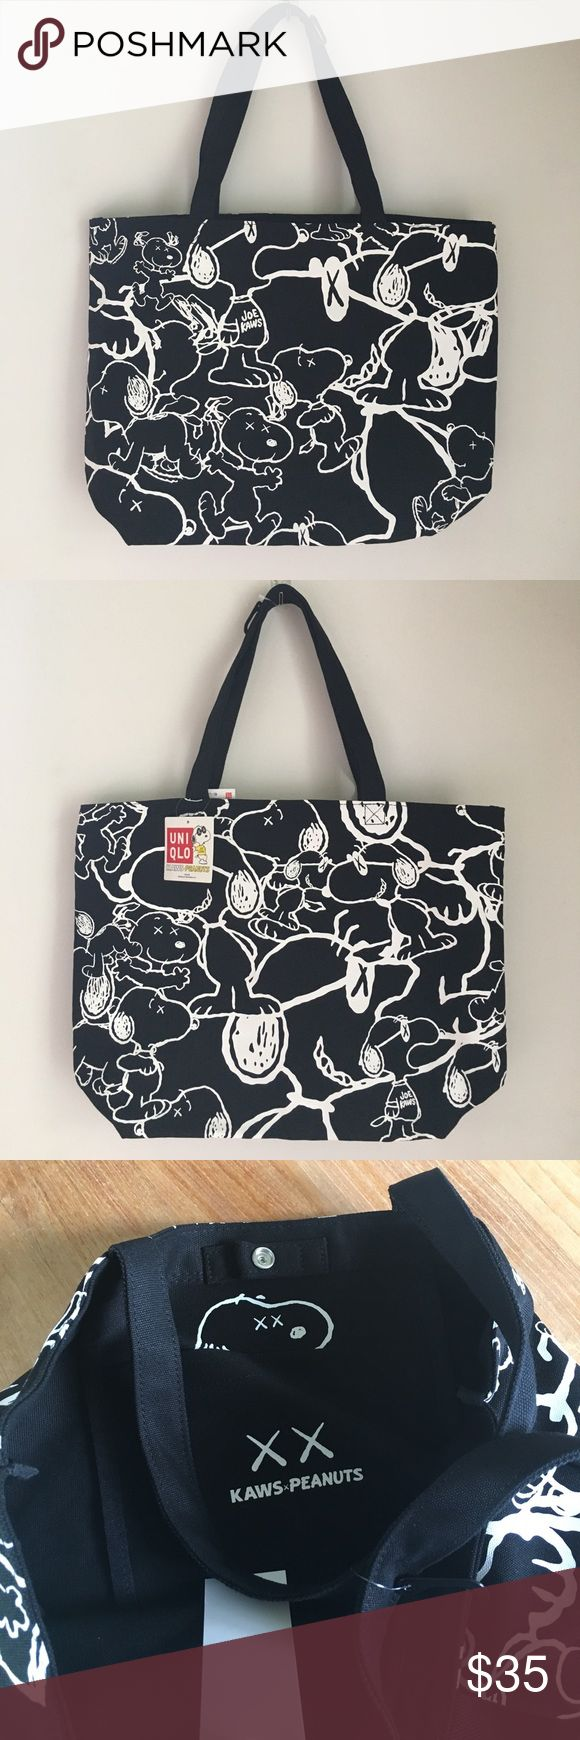 LTD EDITION KAWS x UNIQLO Tote Bag Sold out online. Brand new. KAWS is a graffiti artist turned respected modern artist like Banksy!  Great for any snoopy lover or urban hipster! Uniqlo Bags